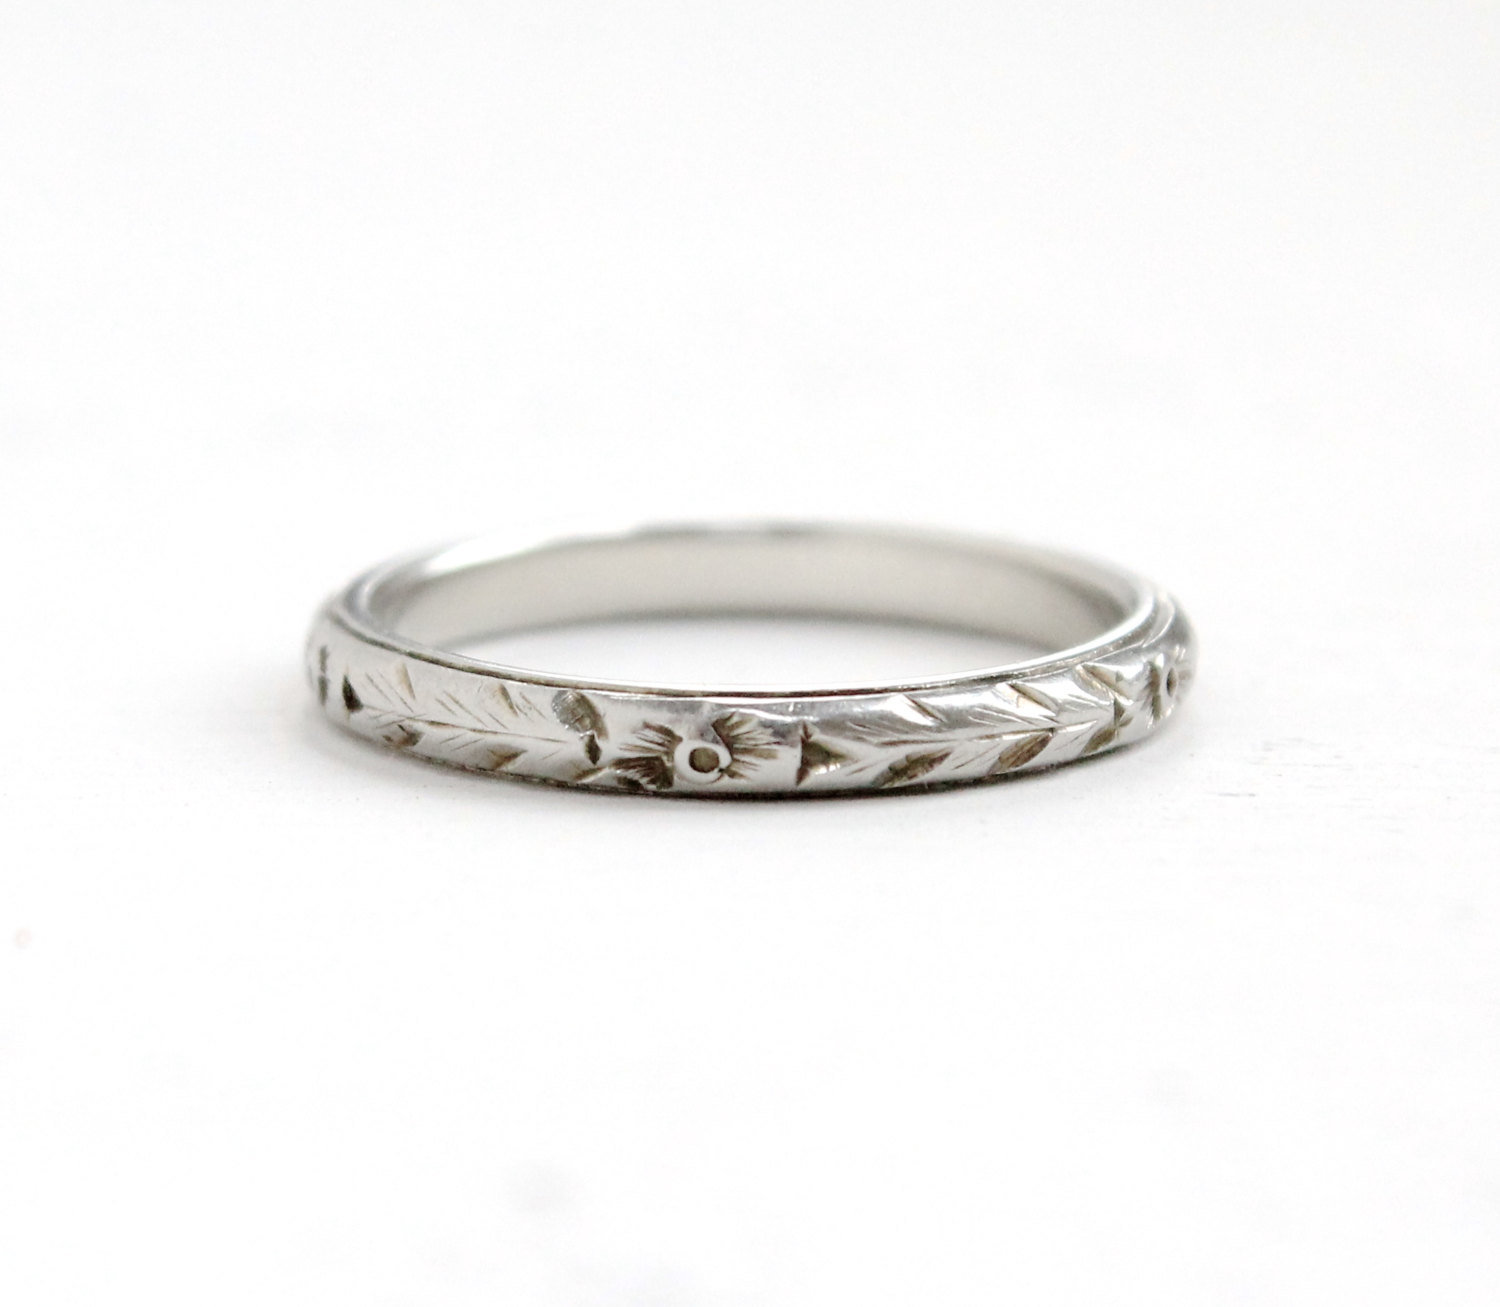 Beautiful Belais 18k White Gold Wedding Band, available  here